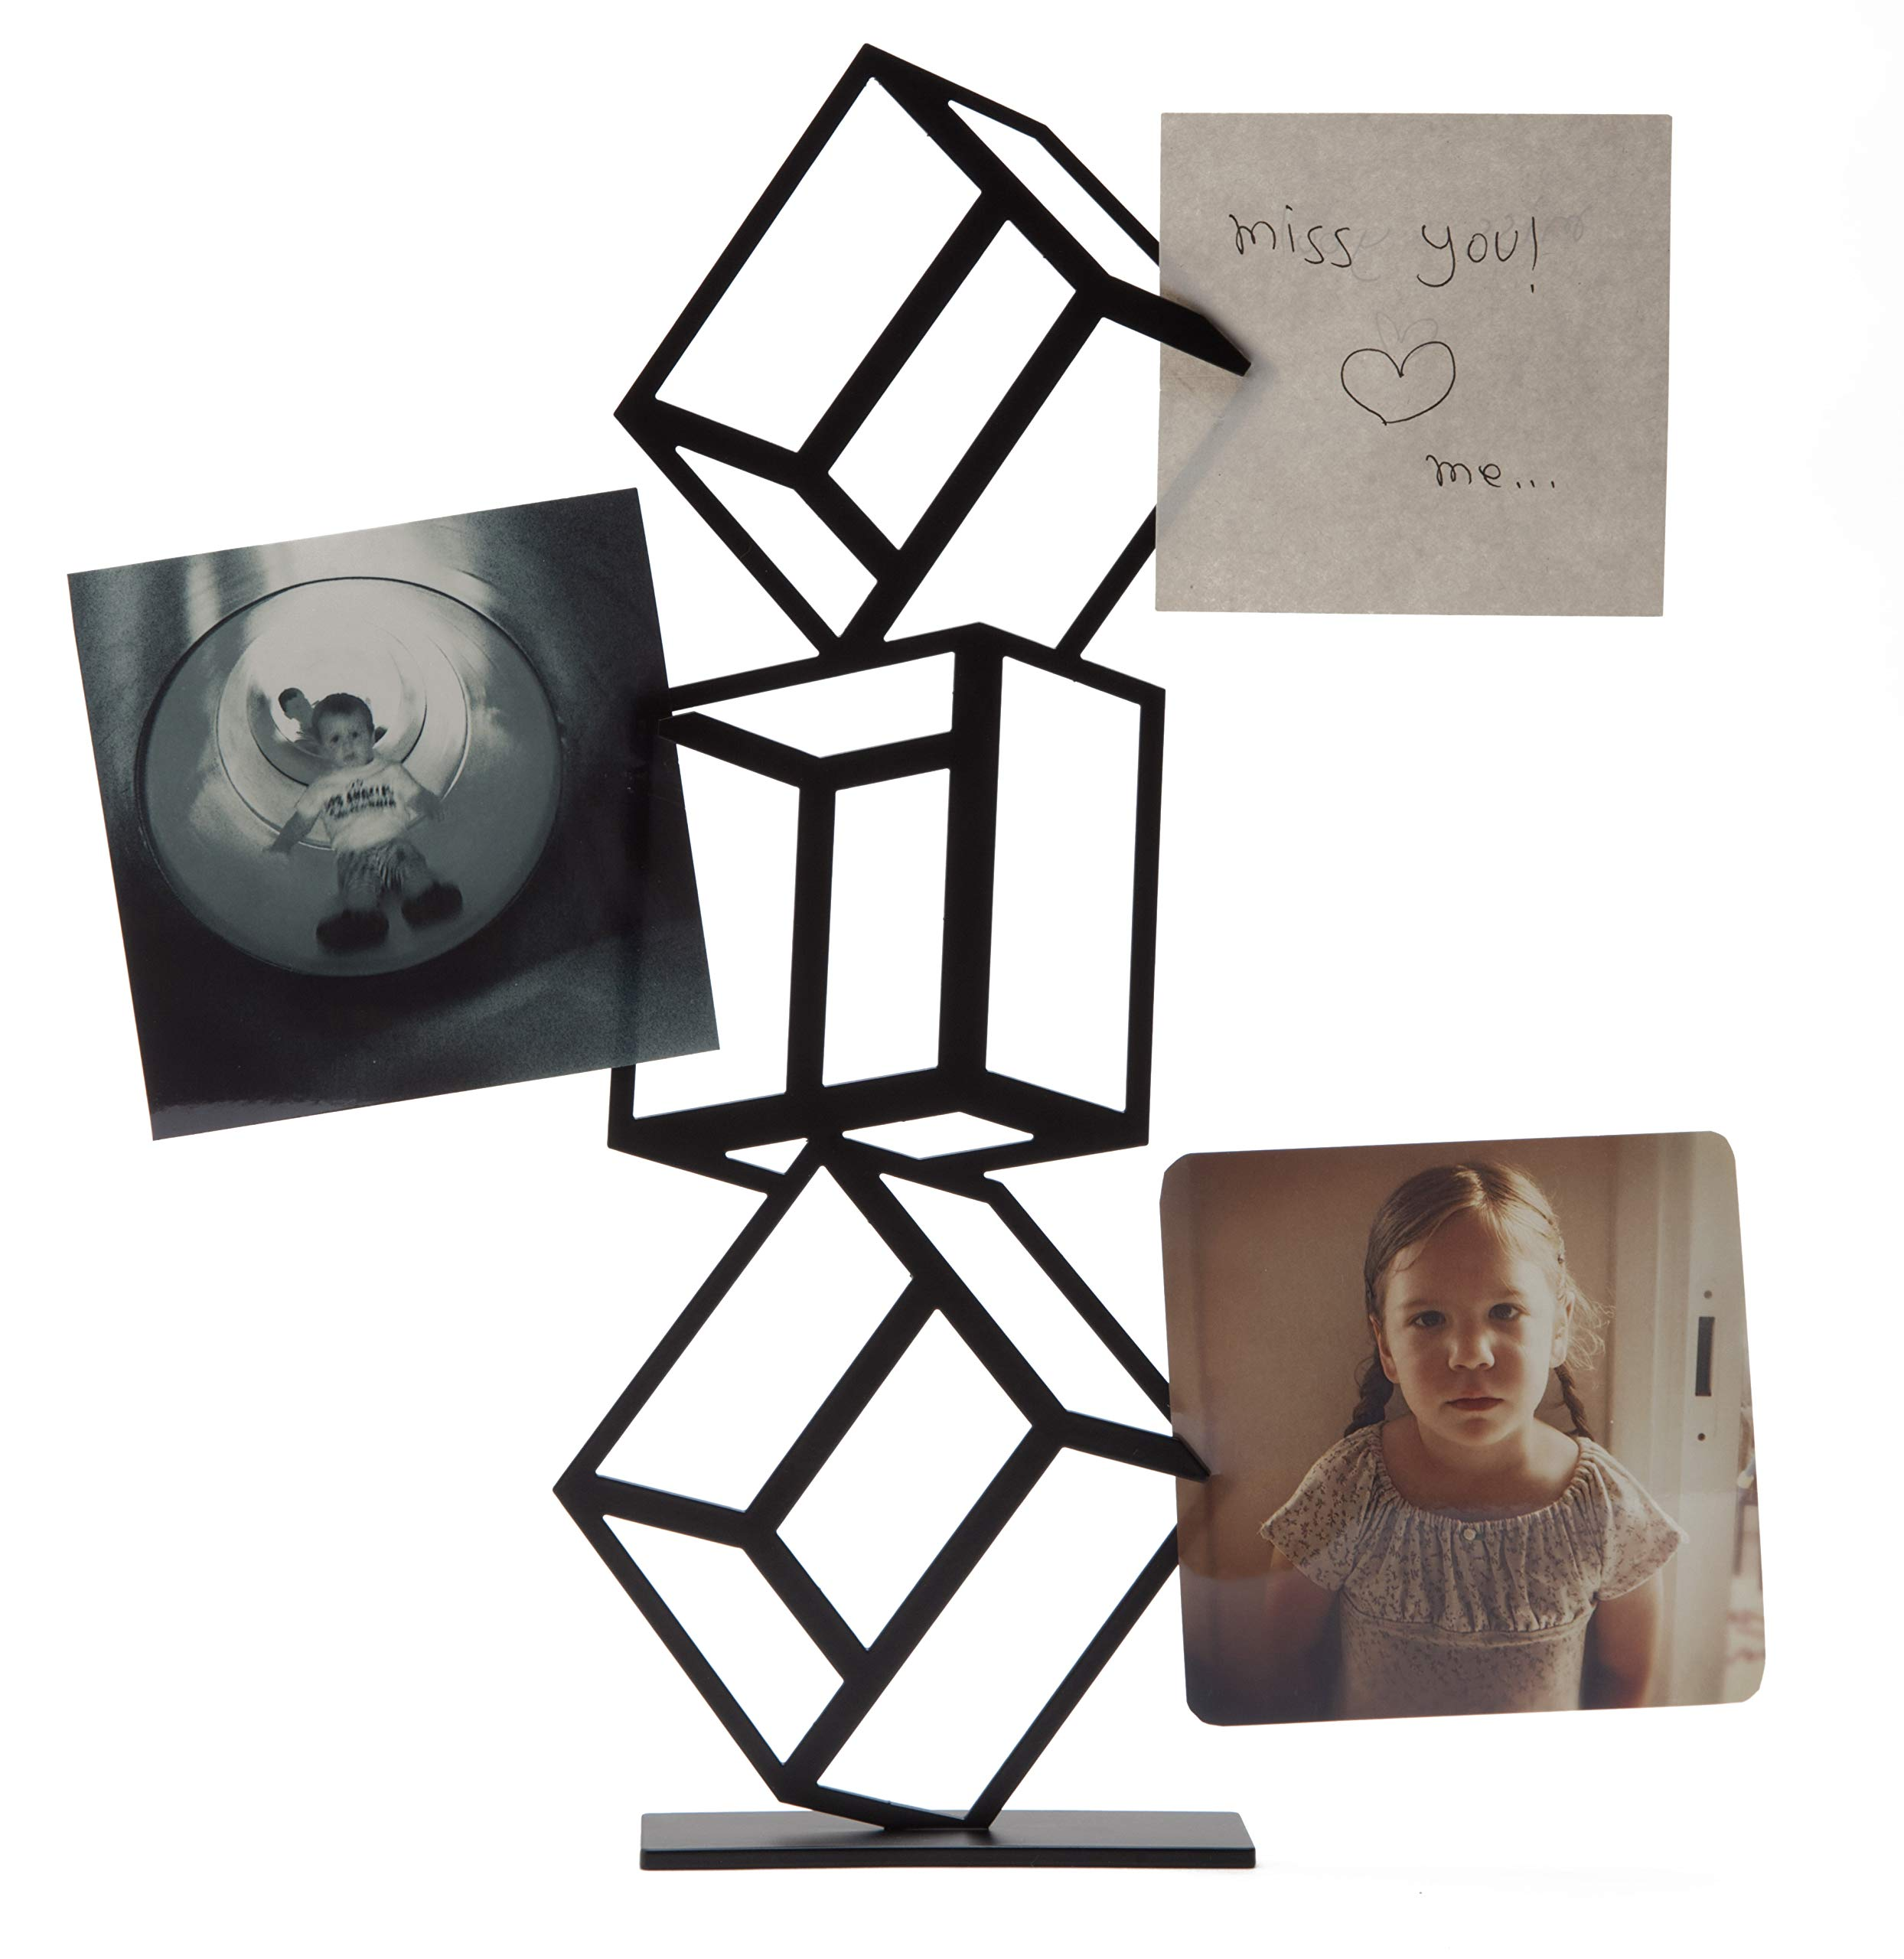 Artori Design - Cube Tower - Black Metal Table Unit for Pictures, Memos & Notes. Office, School, Work space Gift.